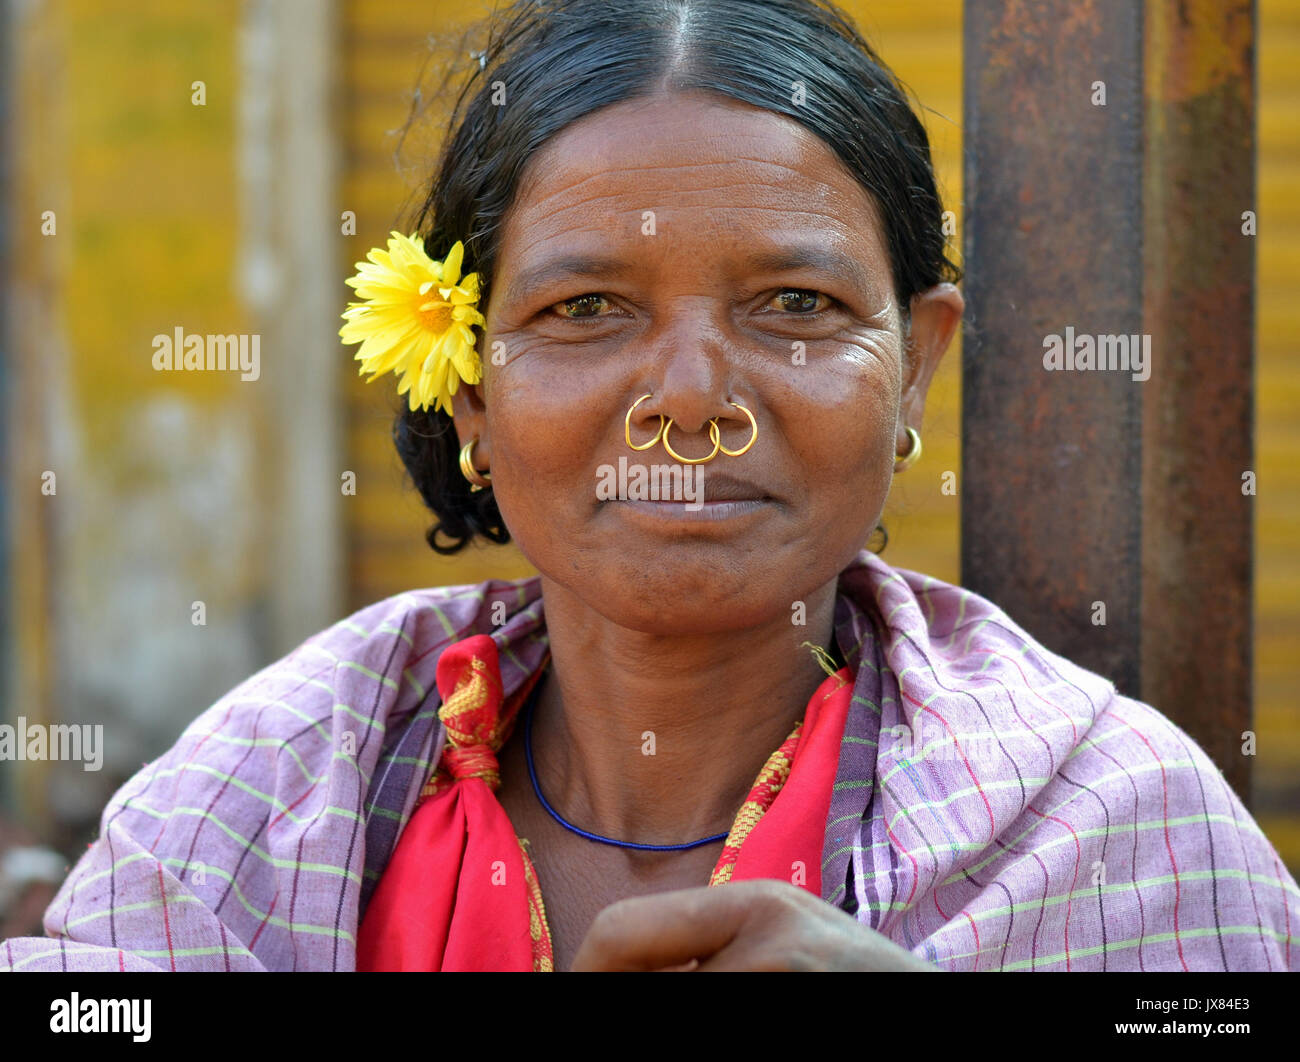 Closeup street portrait (outdoor headshot, full-face view) of a mature Indian Adivasi woman with three golden tribal - Stock Image